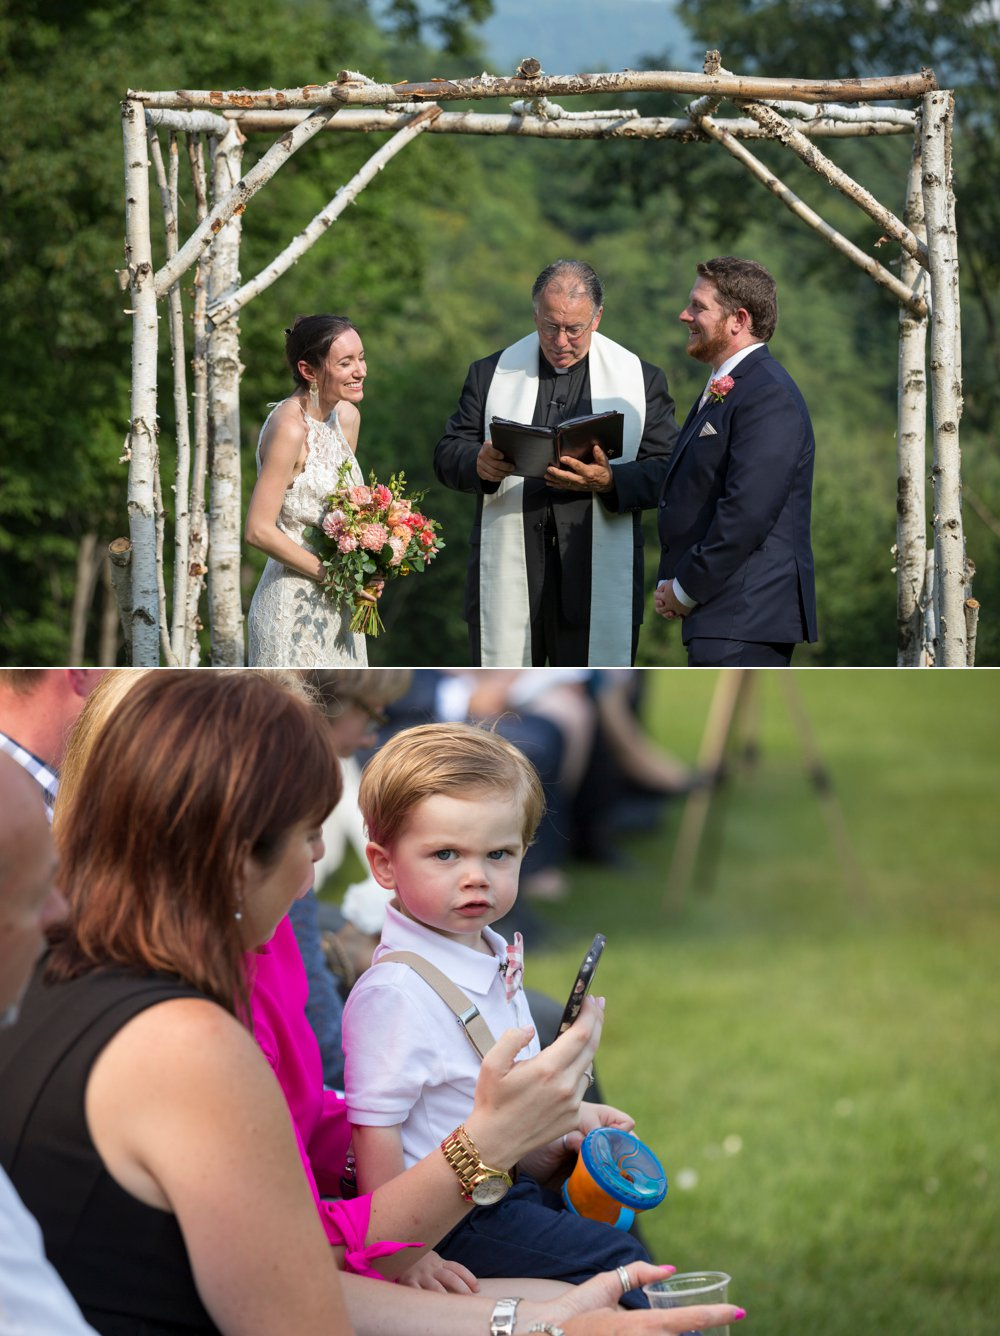 SomerbyJonesPhotography_WestMountainInnWedding_WestMountainInn_RusticVermontWedding_0024.jpg